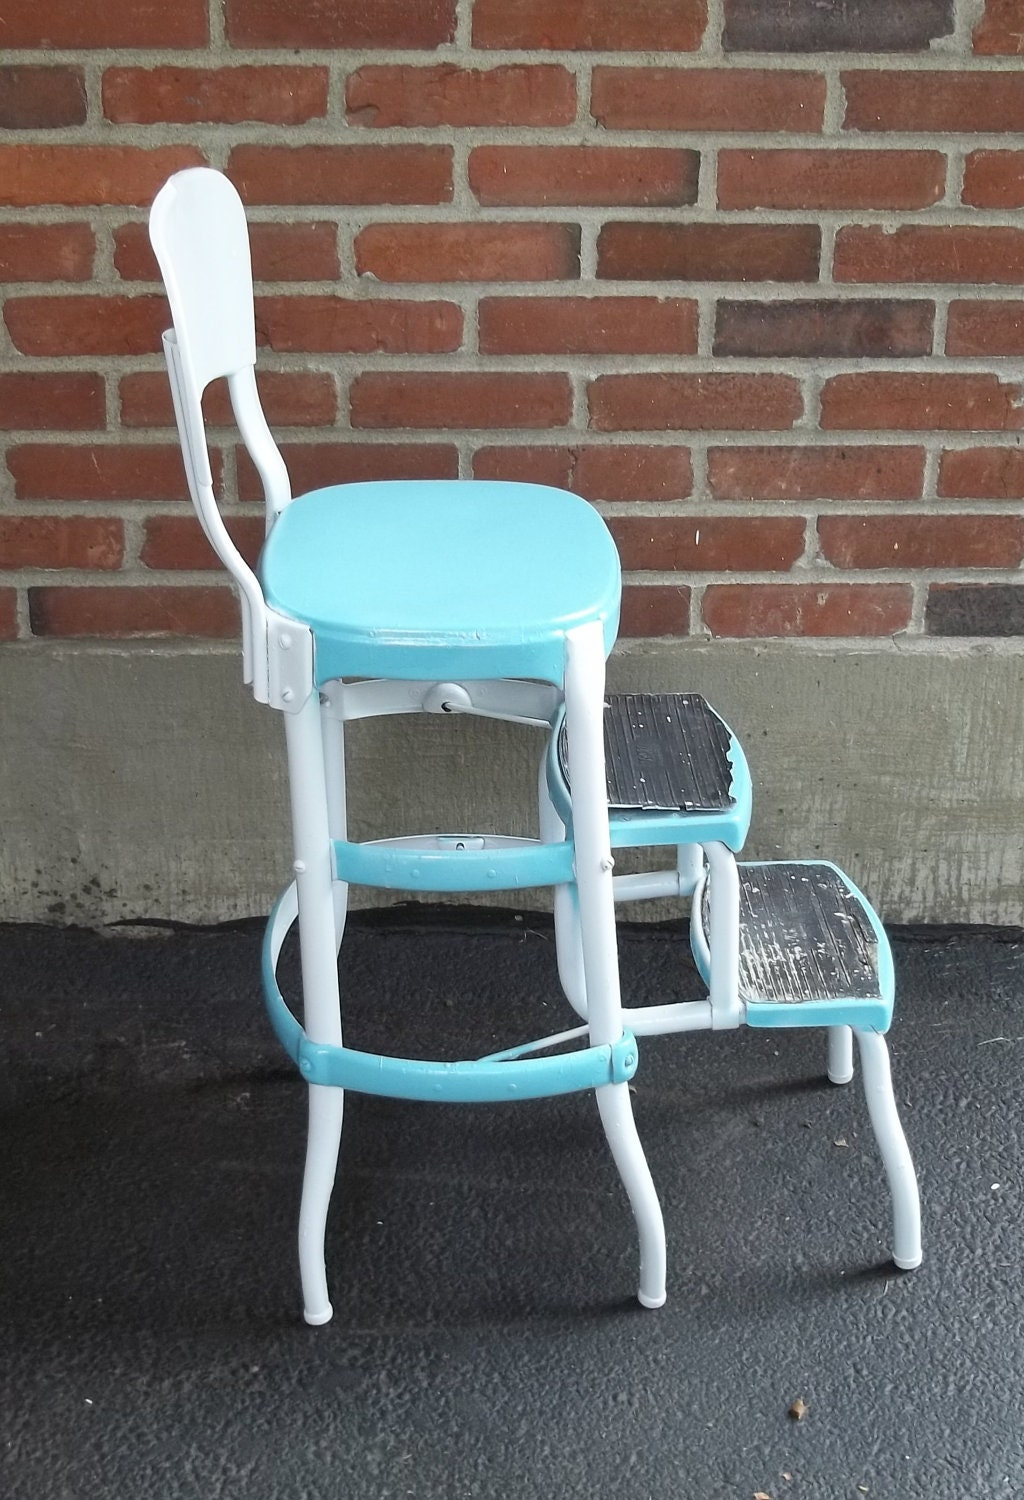 Vintage Cosco All Metal Step Stool Chair In Turquoise Aqua And